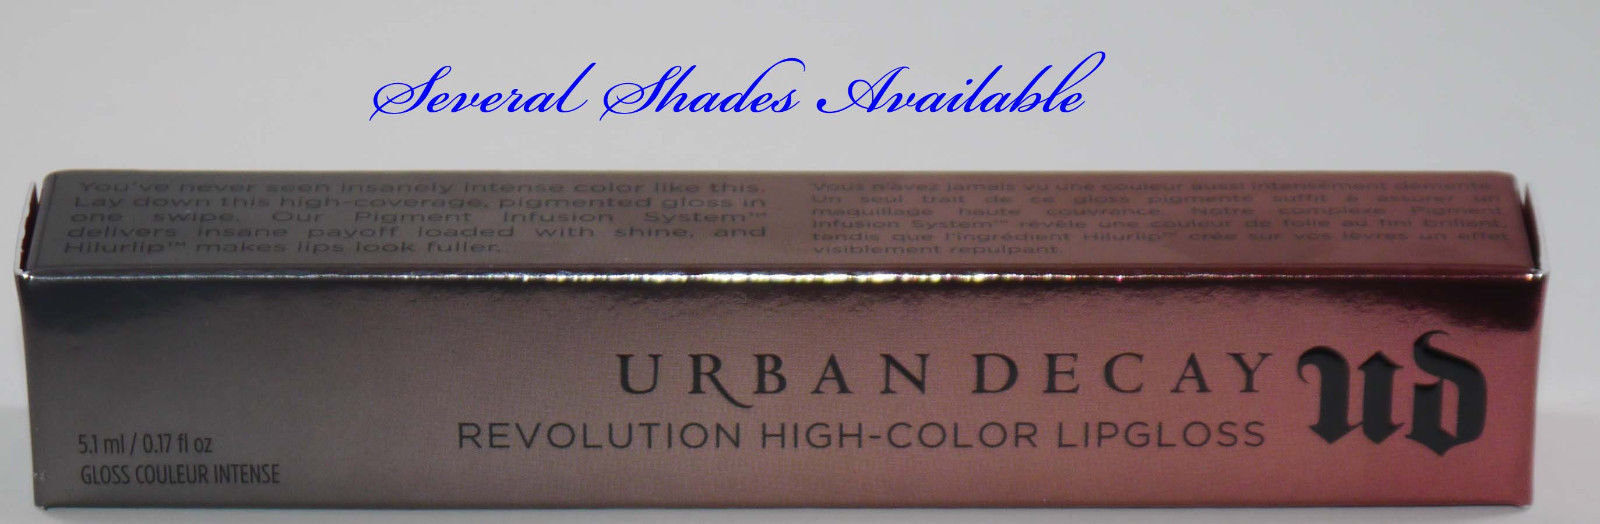 Urban Decay Revolution High-Color Lip Gloss 0.17 oz (Several Shades) 14682